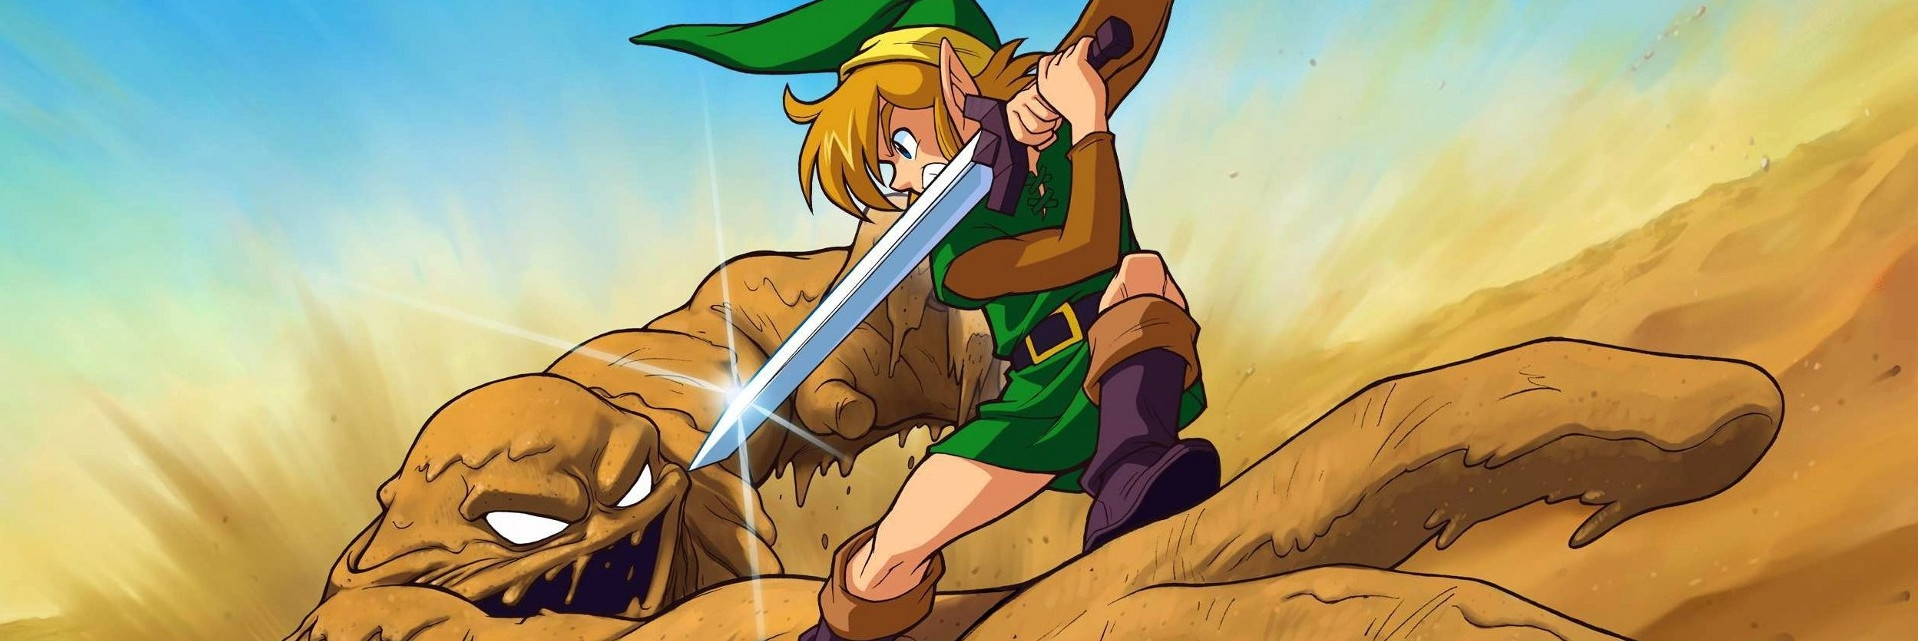 Banner The Legend of Zelda A Link to the Past